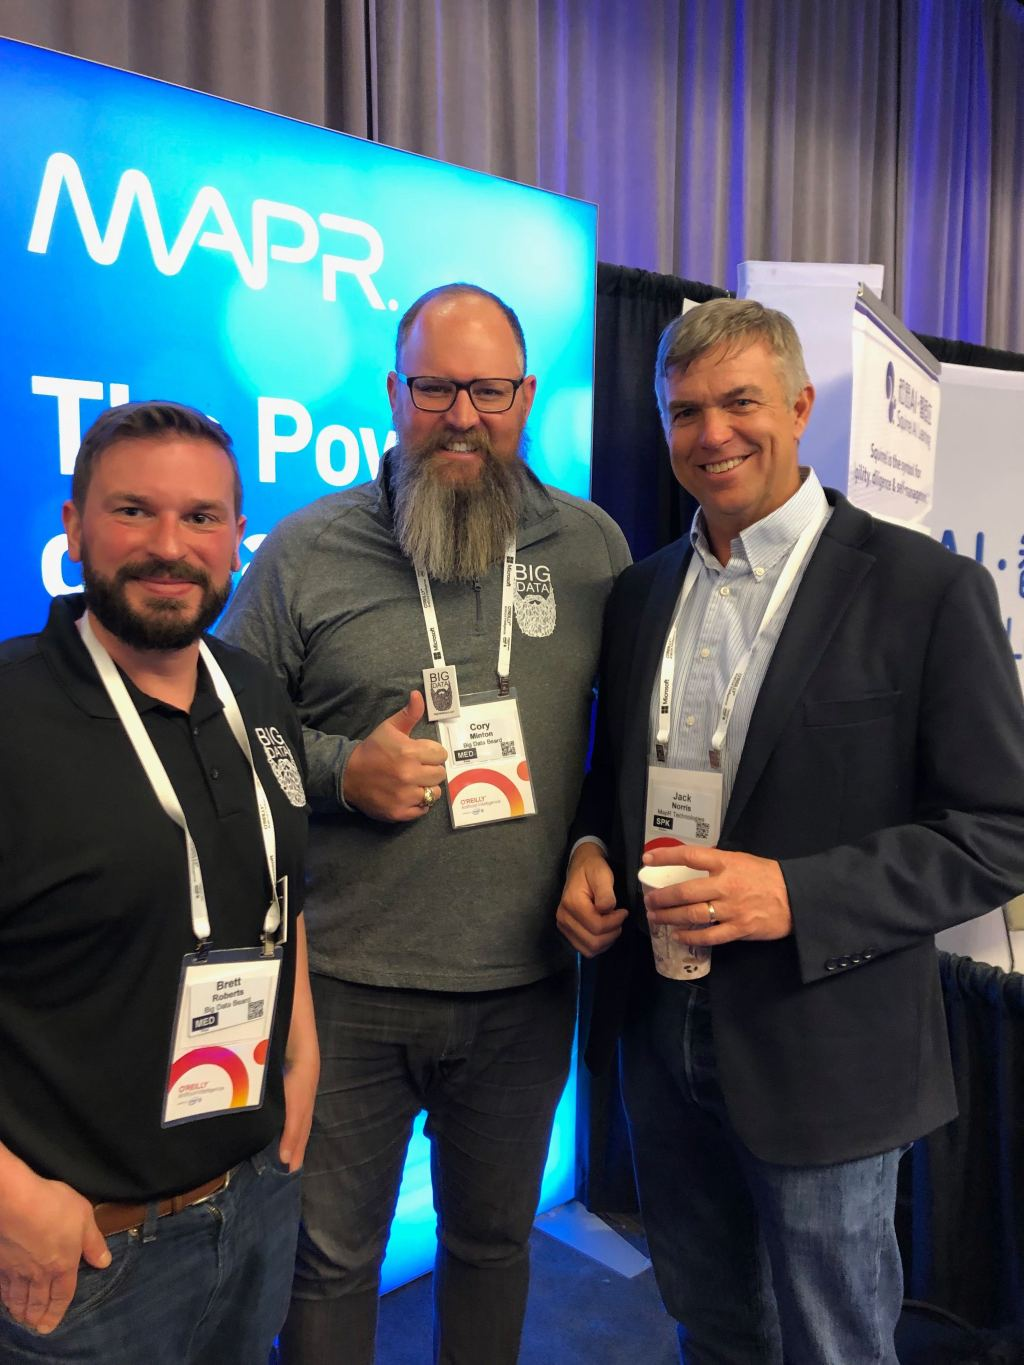 MapR: A Proven Platform for Big Data and AI with Jack Norris